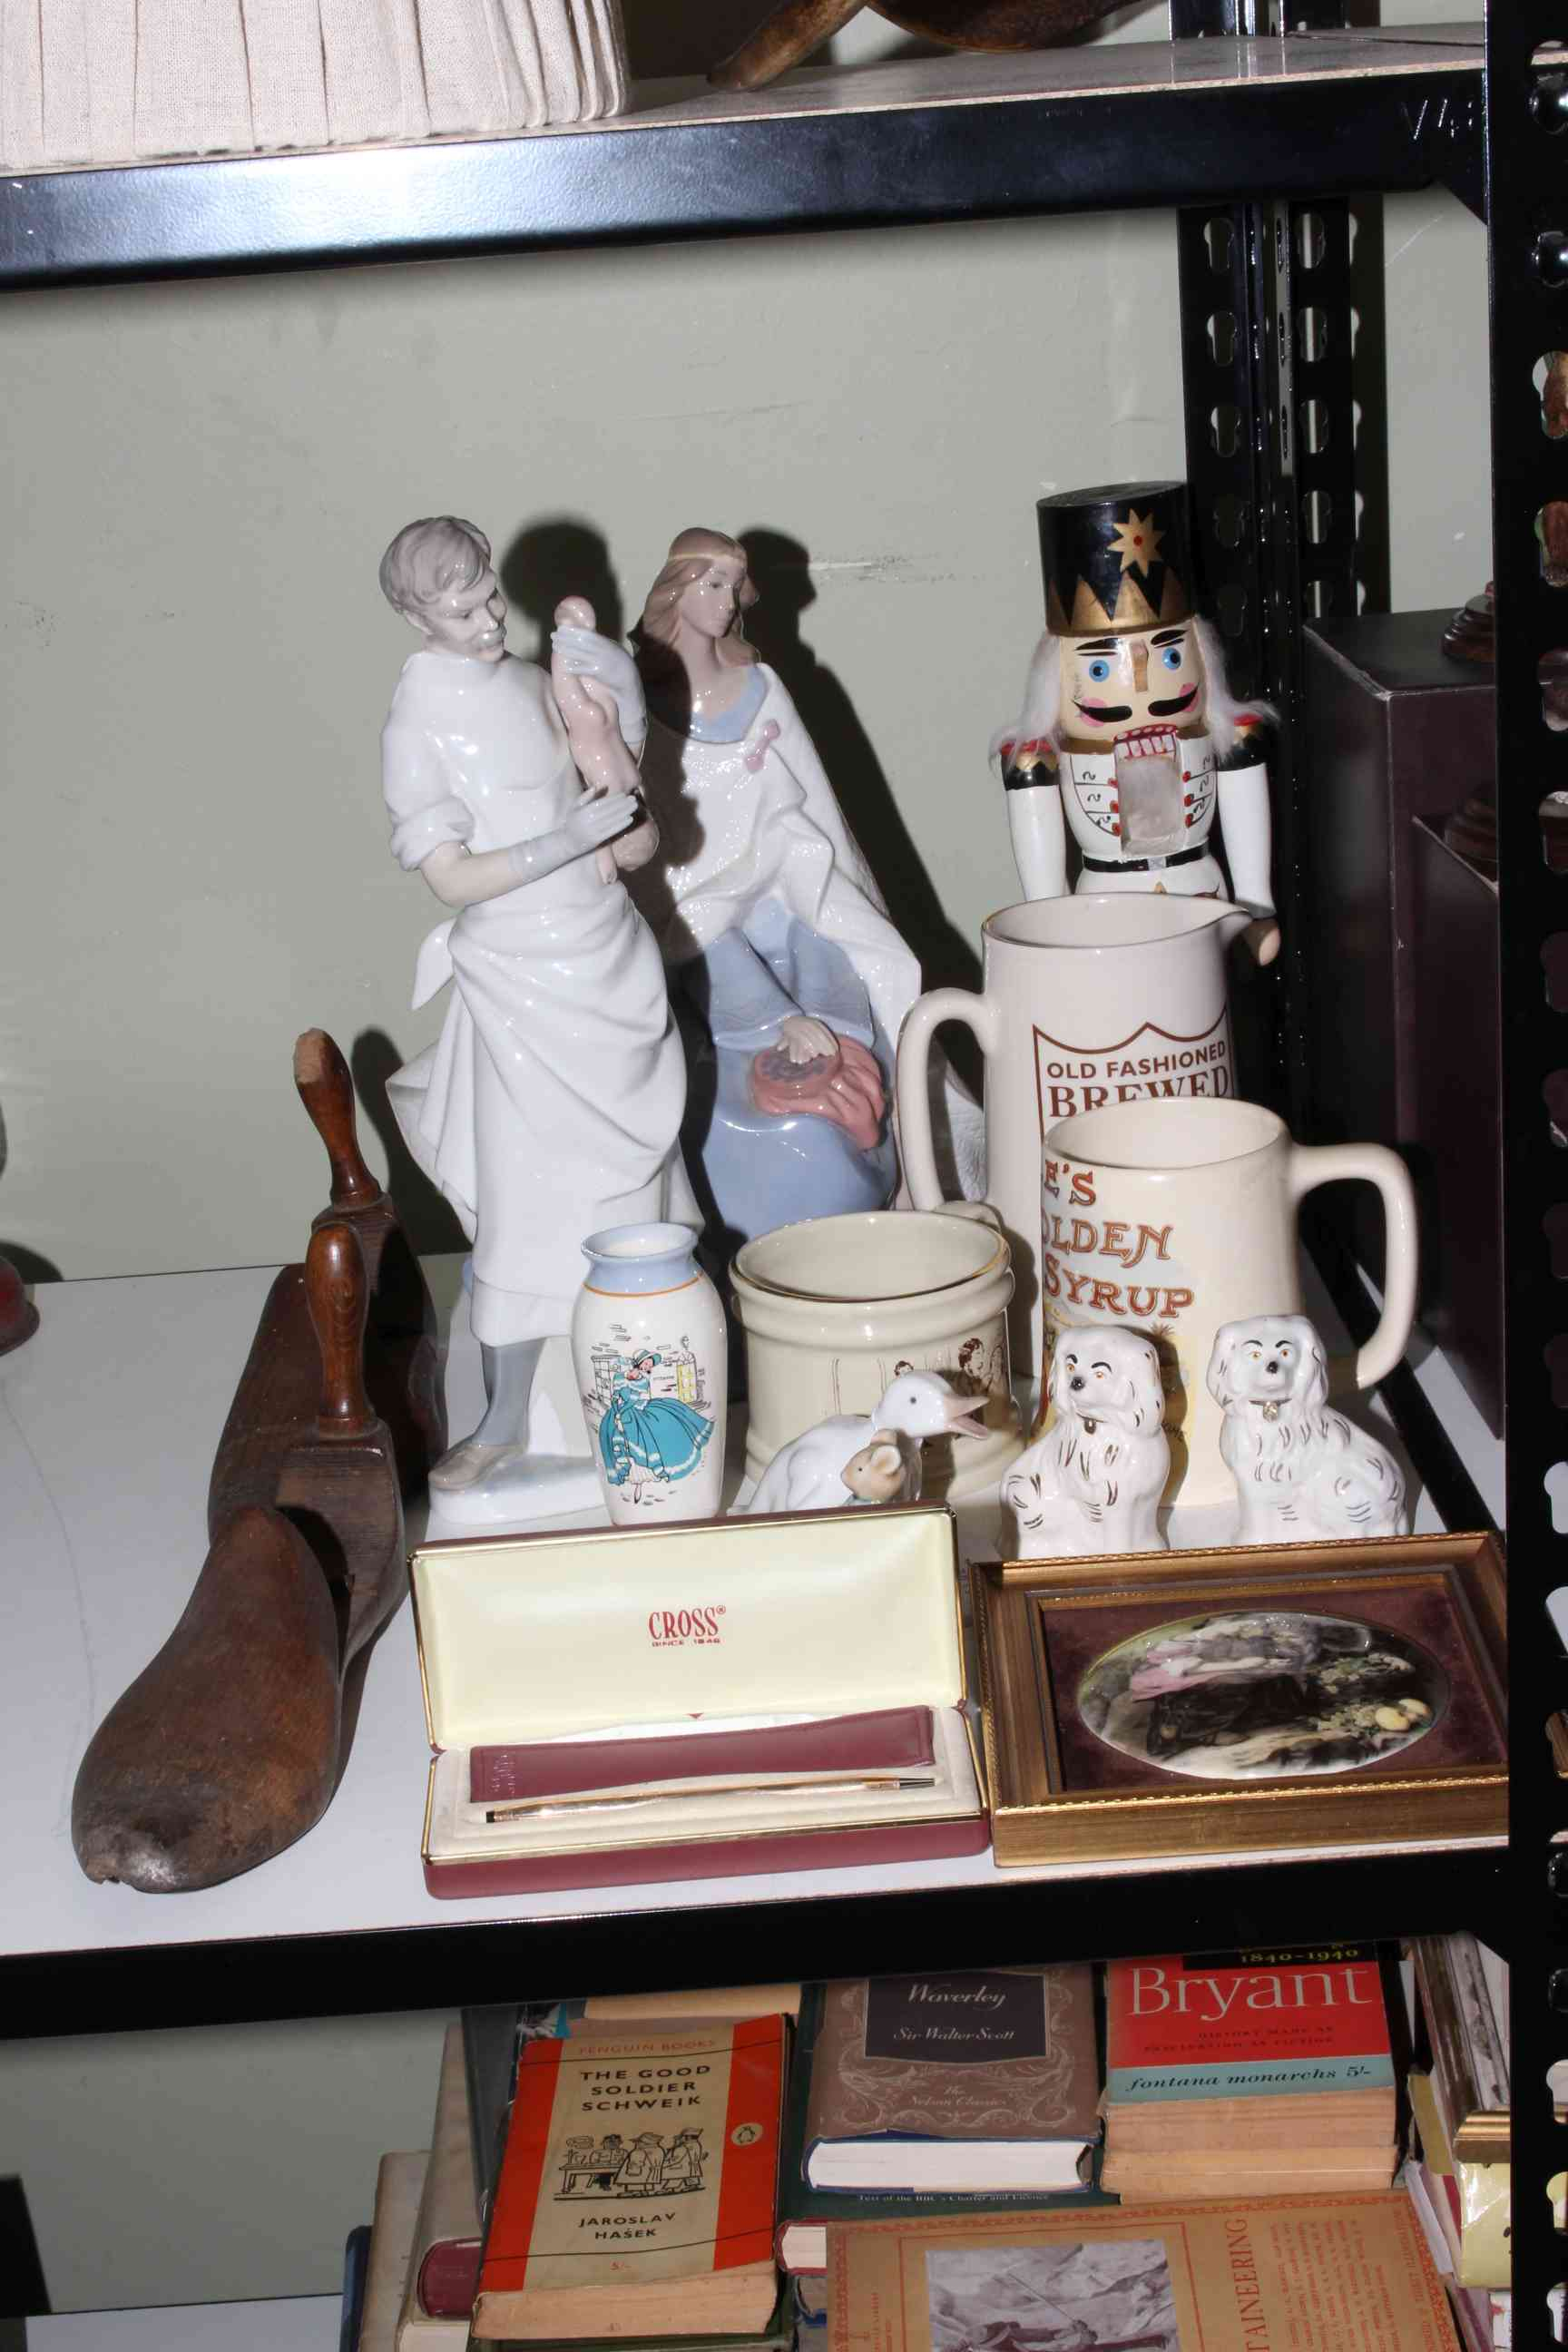 Lot 69 - Wooden shoe shapers, Nao and Lladro figurines, Wade, cross pen, etc.